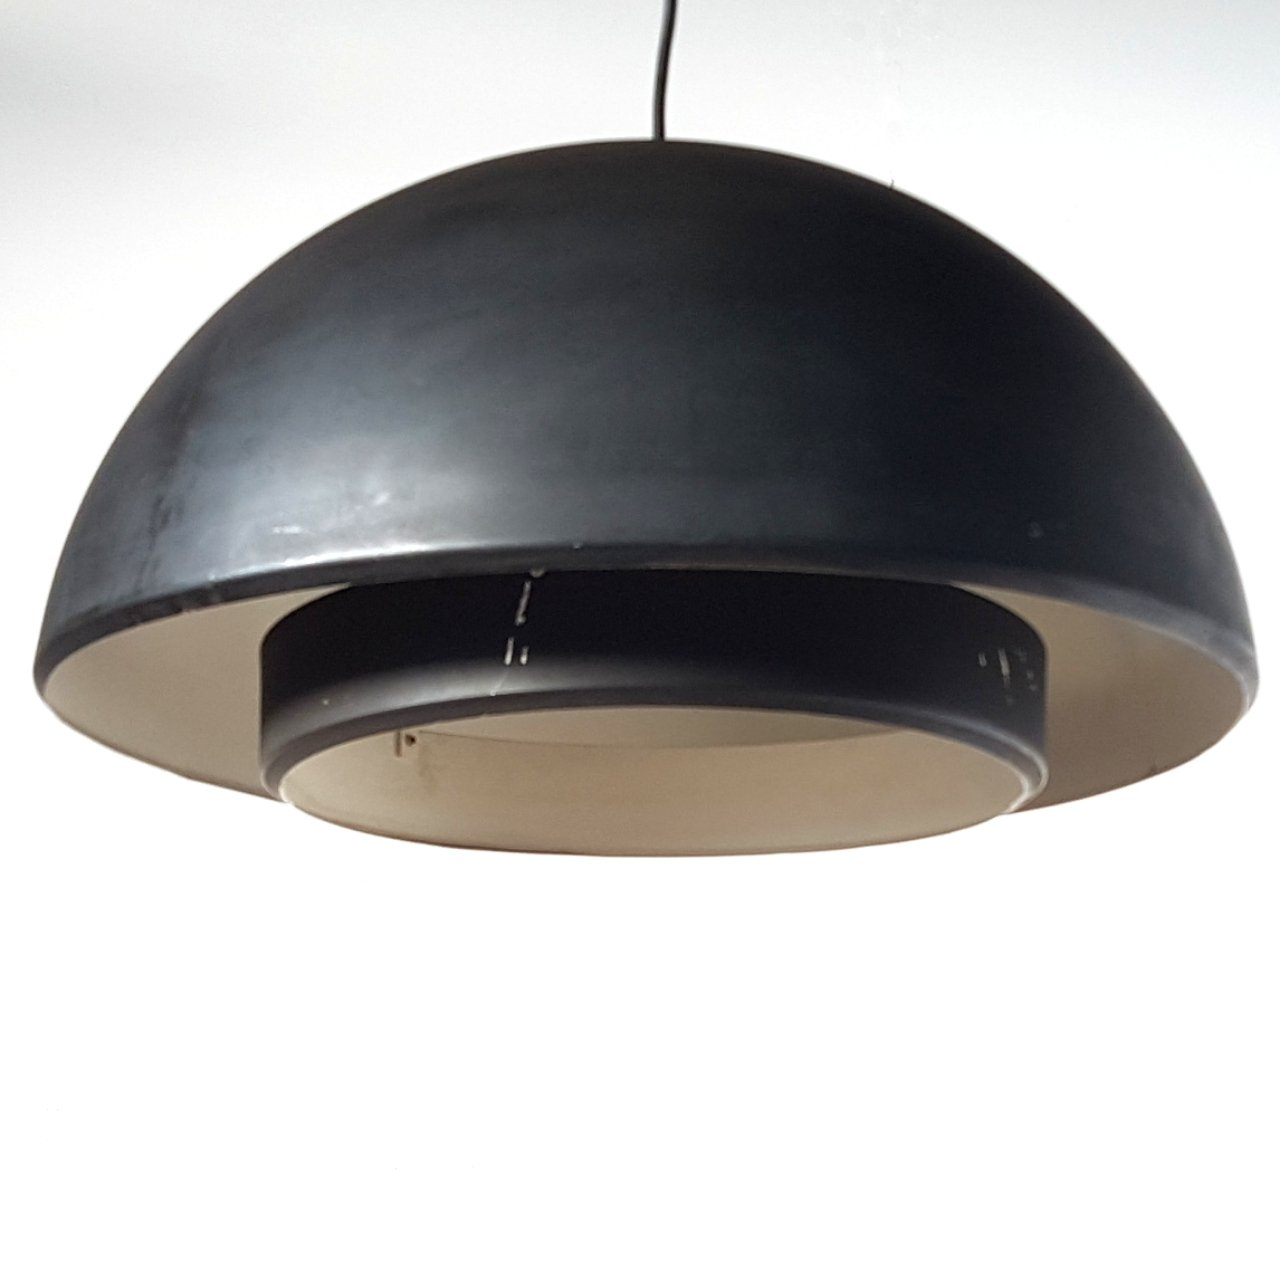 Design Lampen Minimalist Metal Dutch Design Pendant Lamp By Dijkstra Lampen 1960s